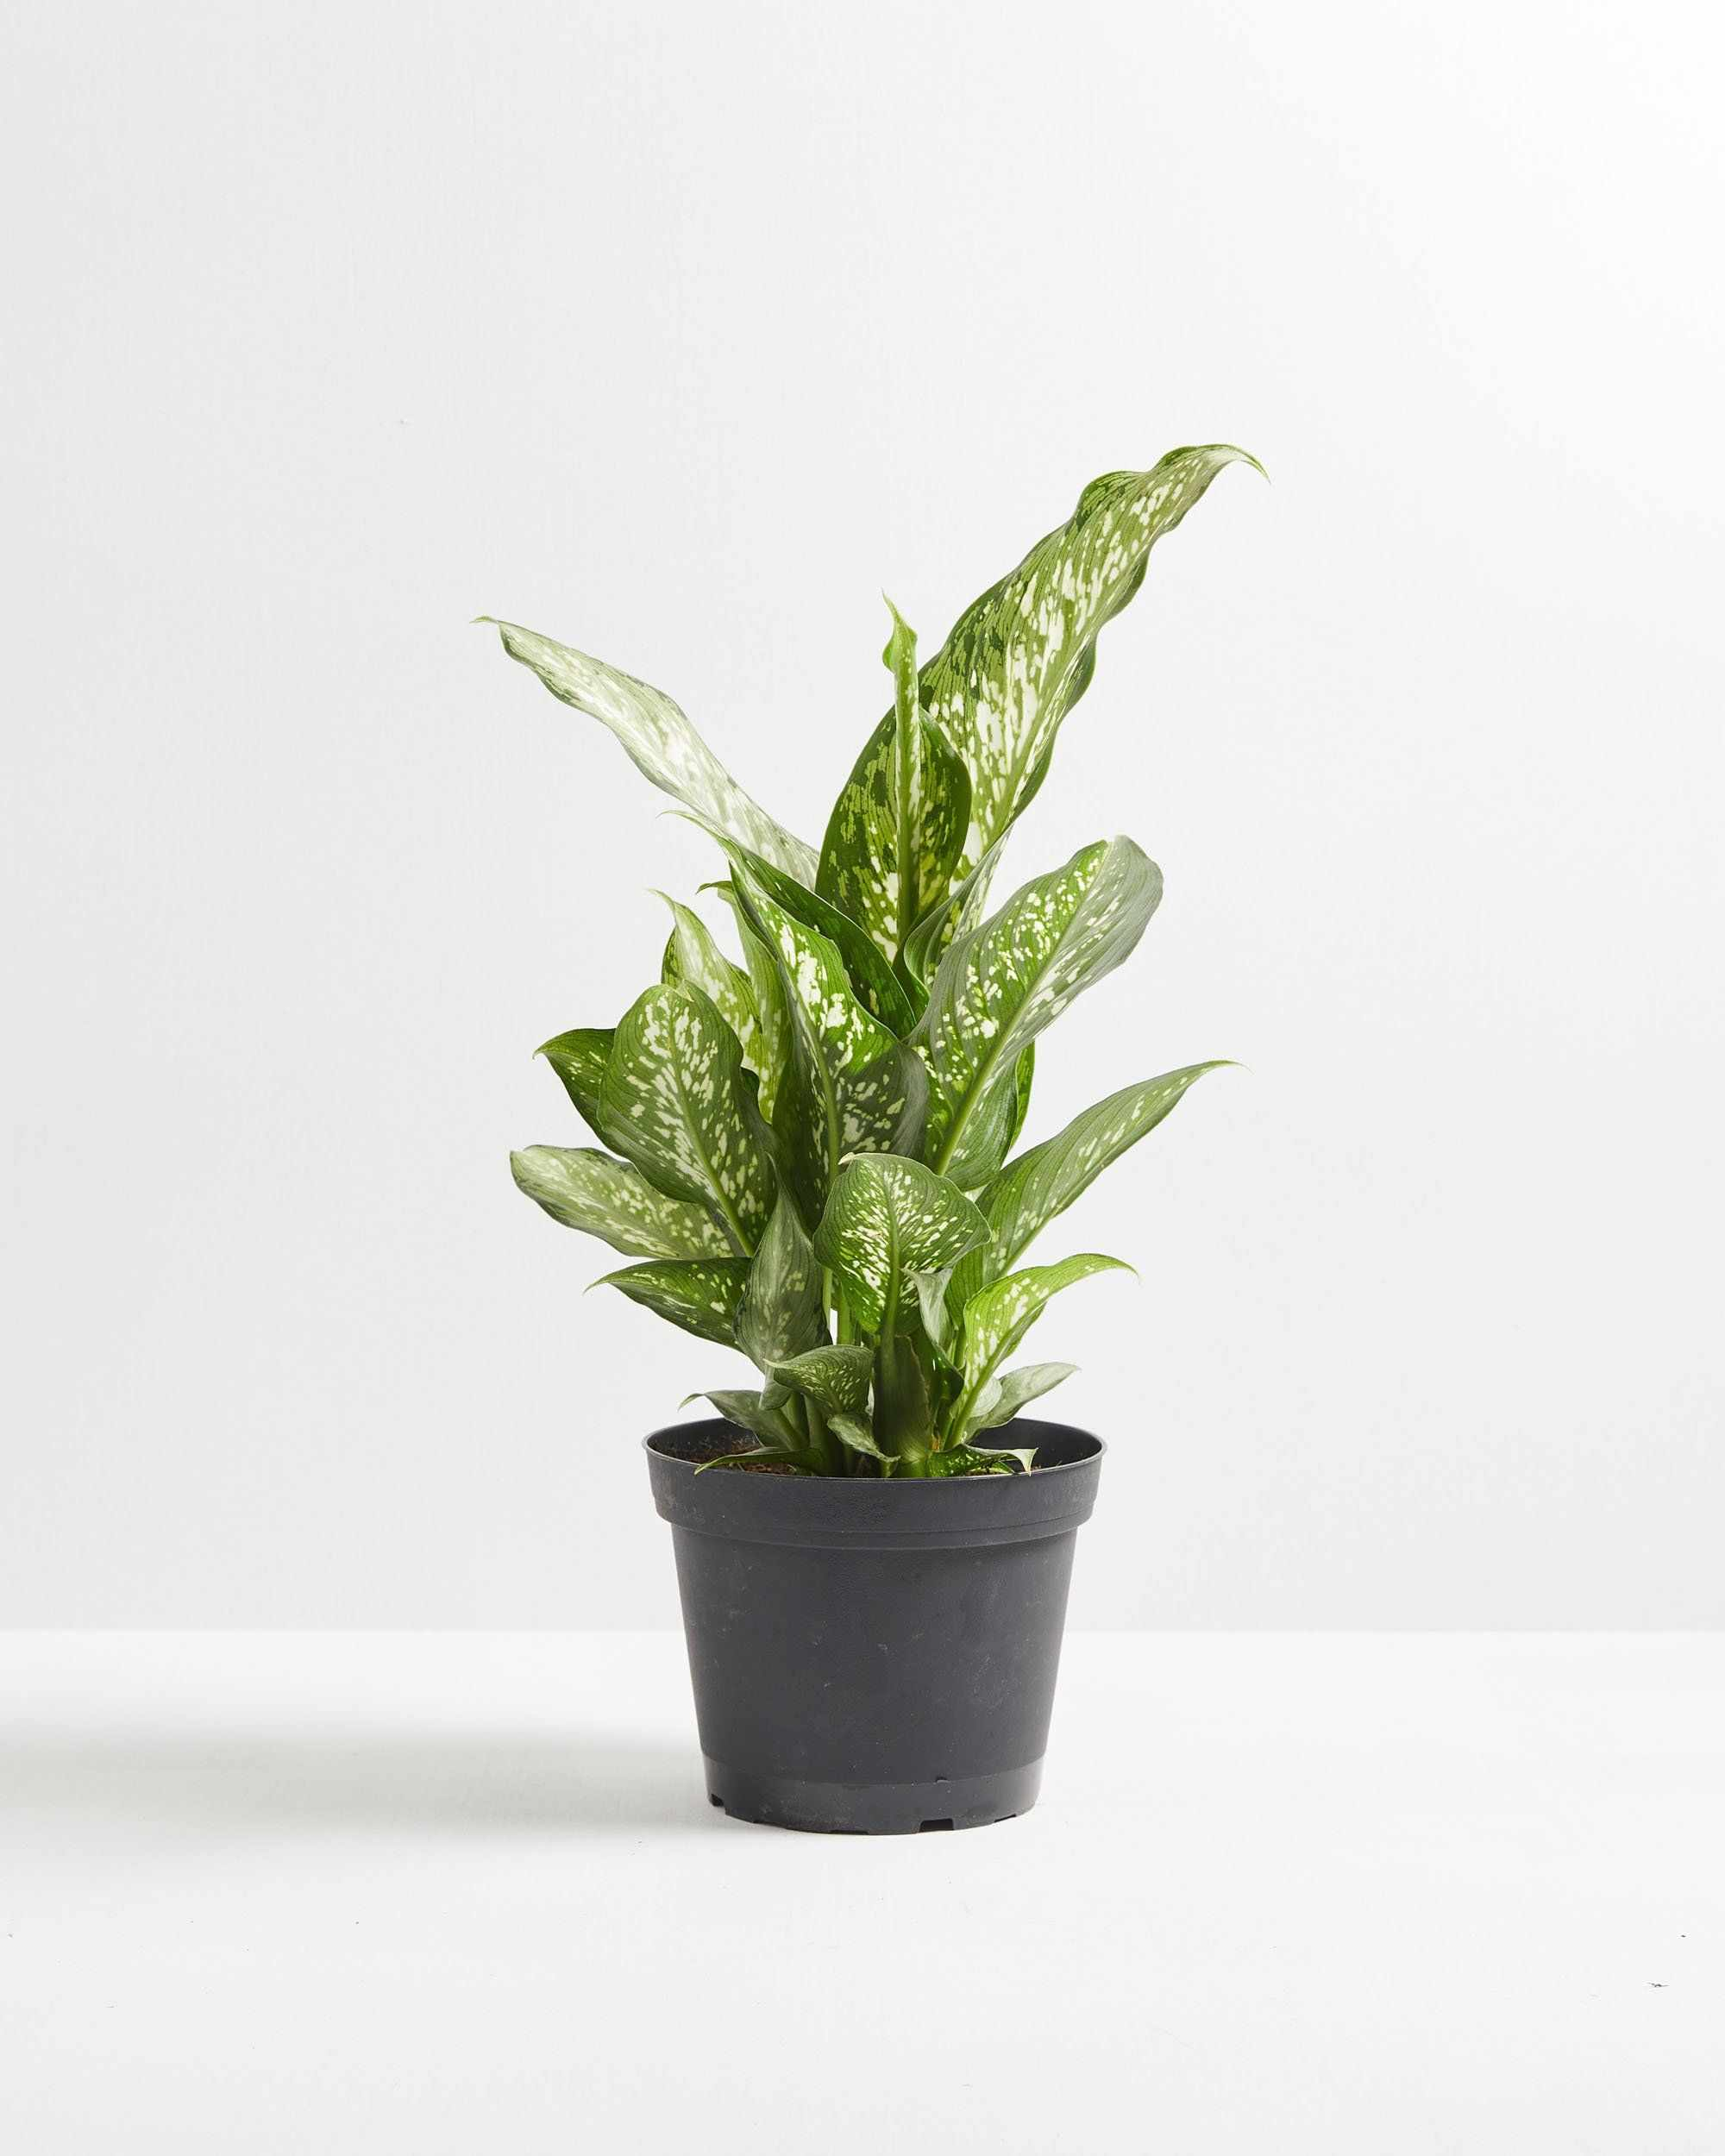 Dumb cane plant in grower's pot